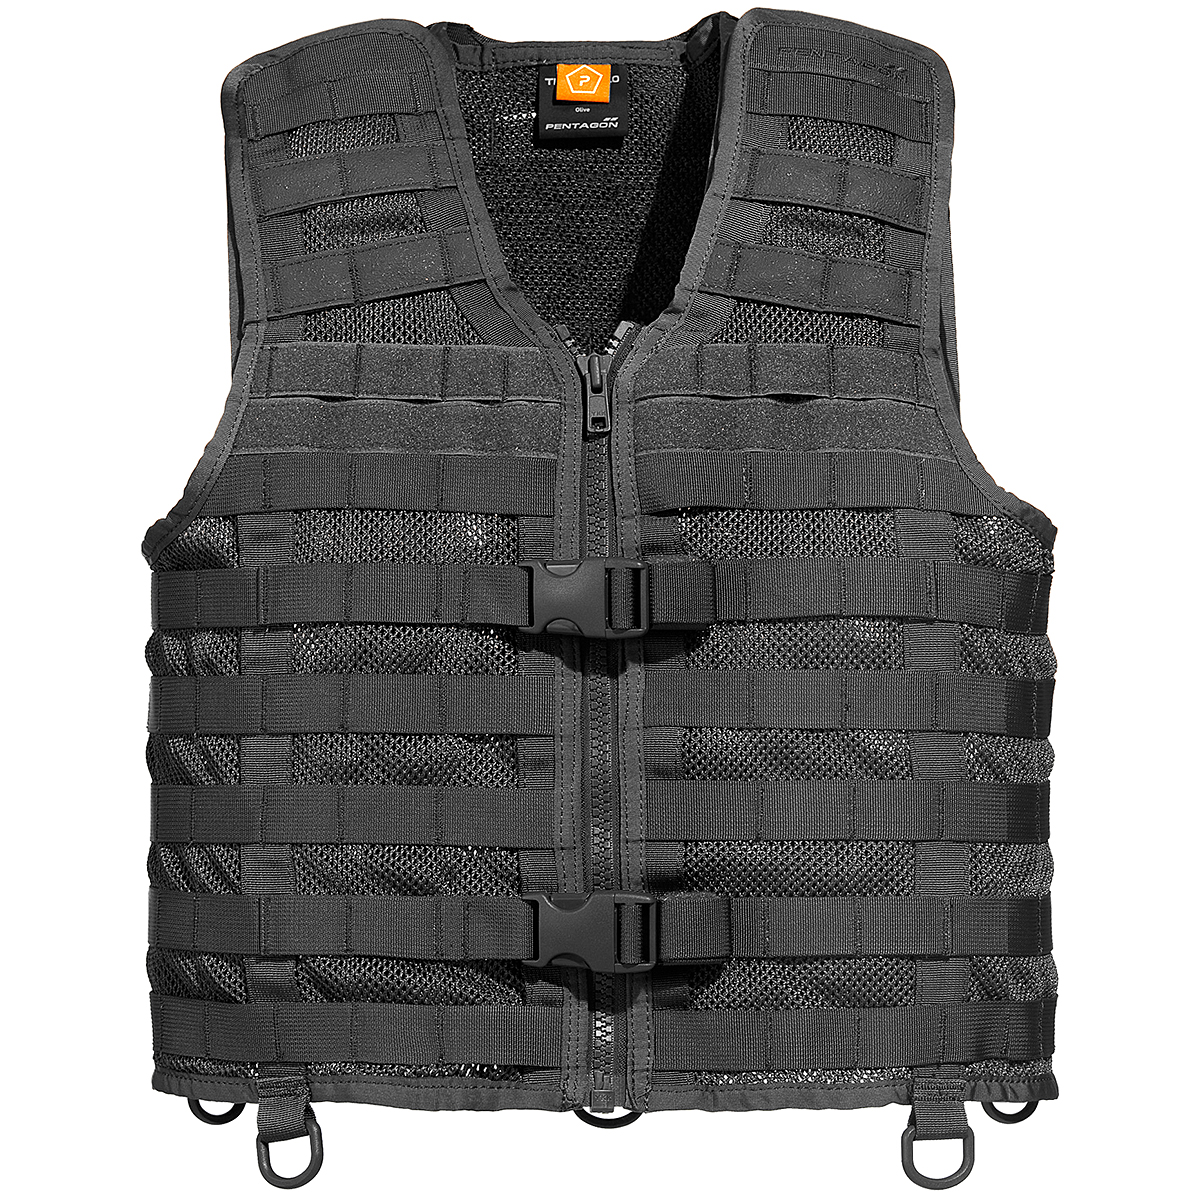 Black Brand Denim Vest The Black Denim Vest brings you all the great features found in the Black Brand leather Club Vest, but with the main body built from rugged oz. denim. Trimmed with mm top grain milled matte leather, this is good-looking vest is loaded with features like dual conceal carry pockets, snap and zipper front closure and.